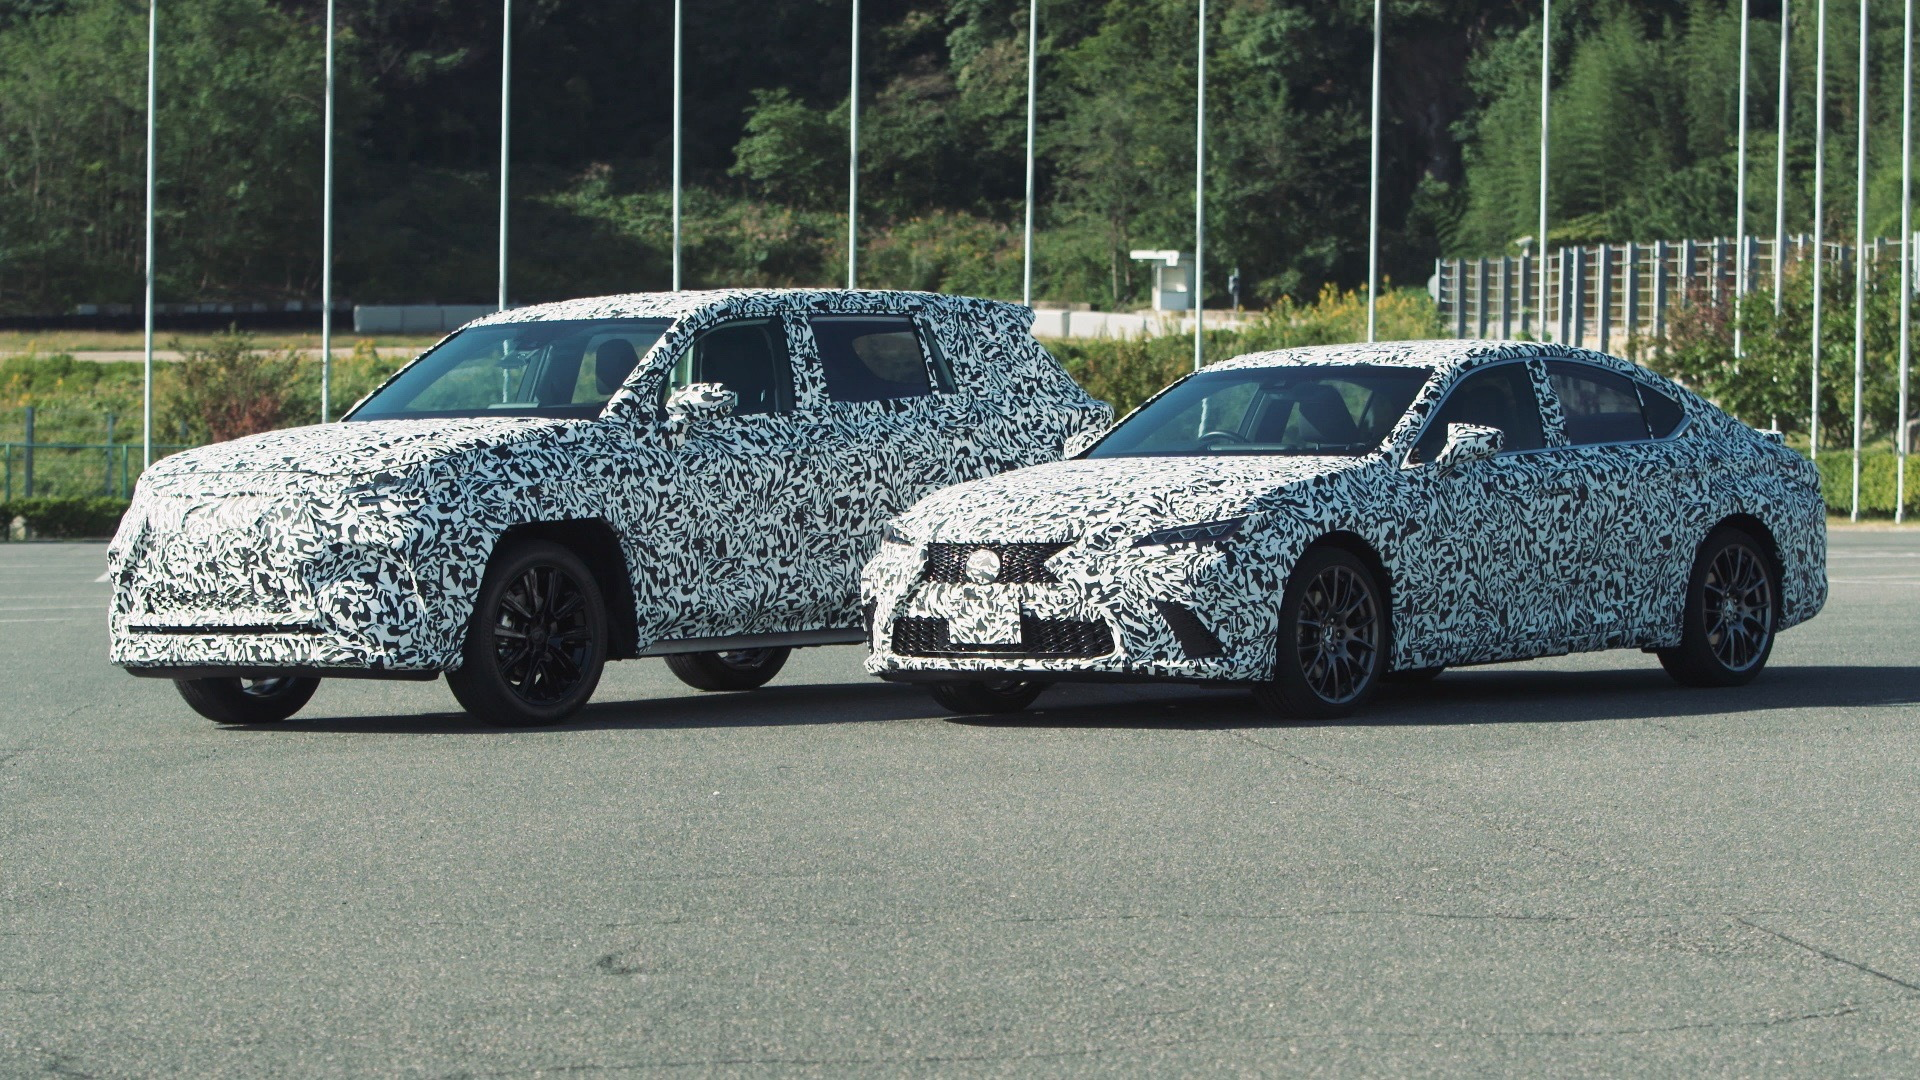 Lexus DIRECT4 all-wheel drive system development mules